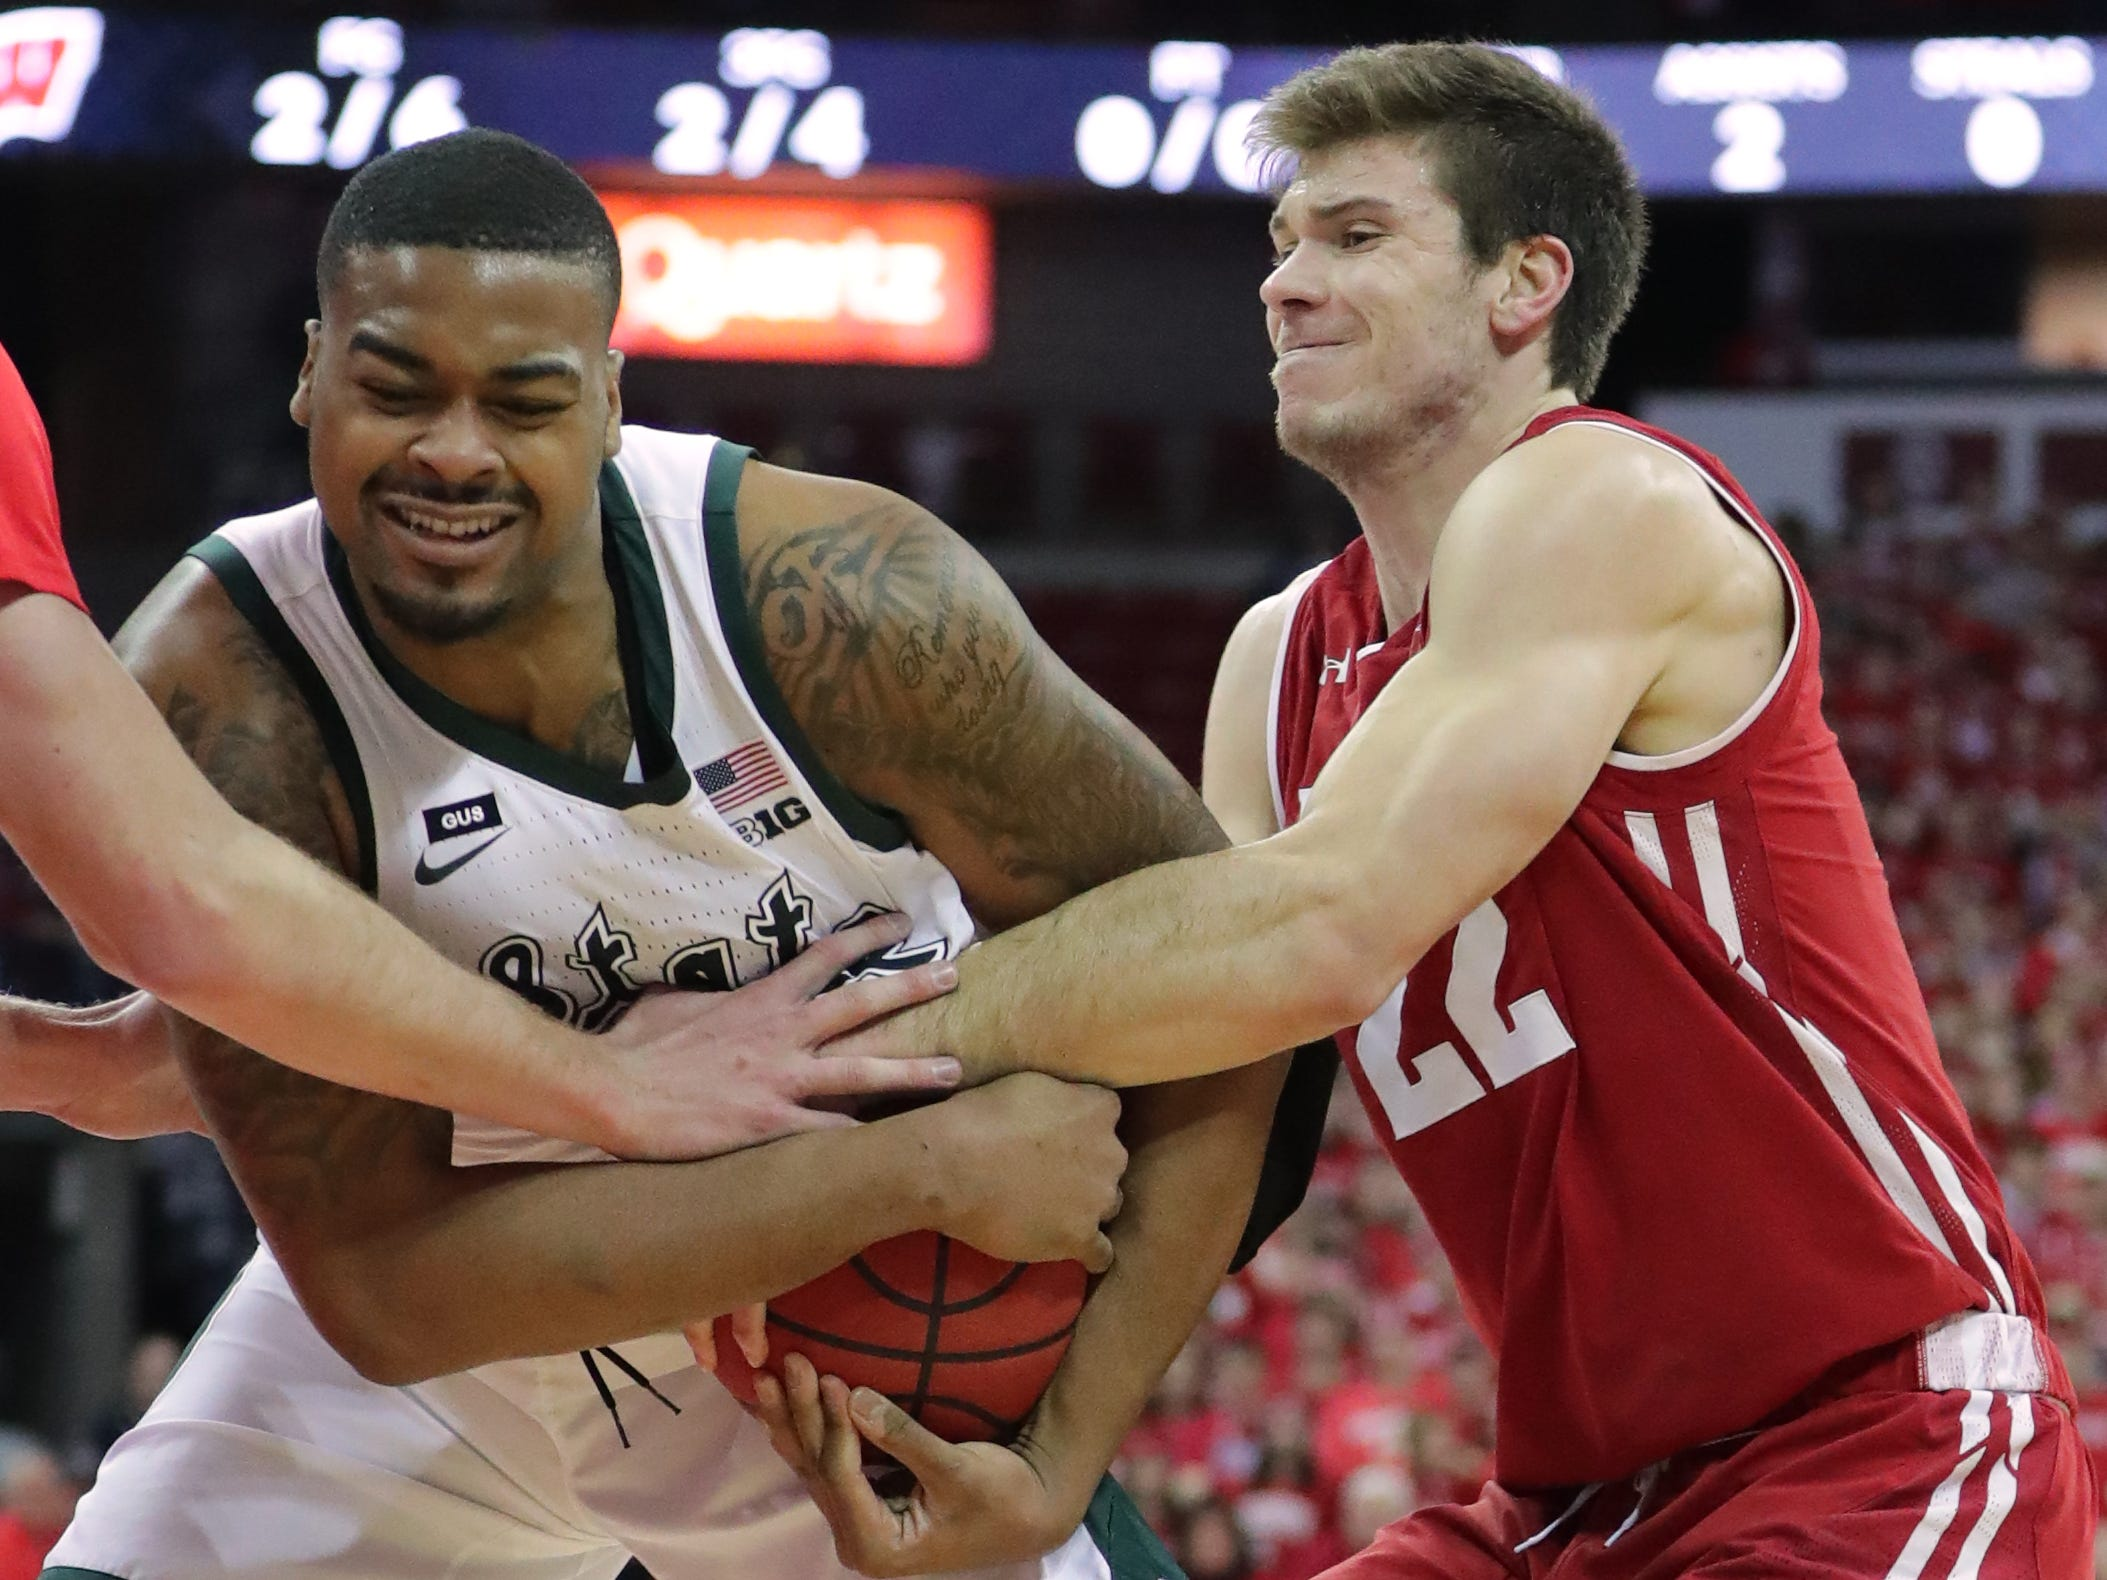 Wisconsin forward Ethan Happ tries to wrestle the ball from Michigan State forward Nick Ward on Tuesday night.